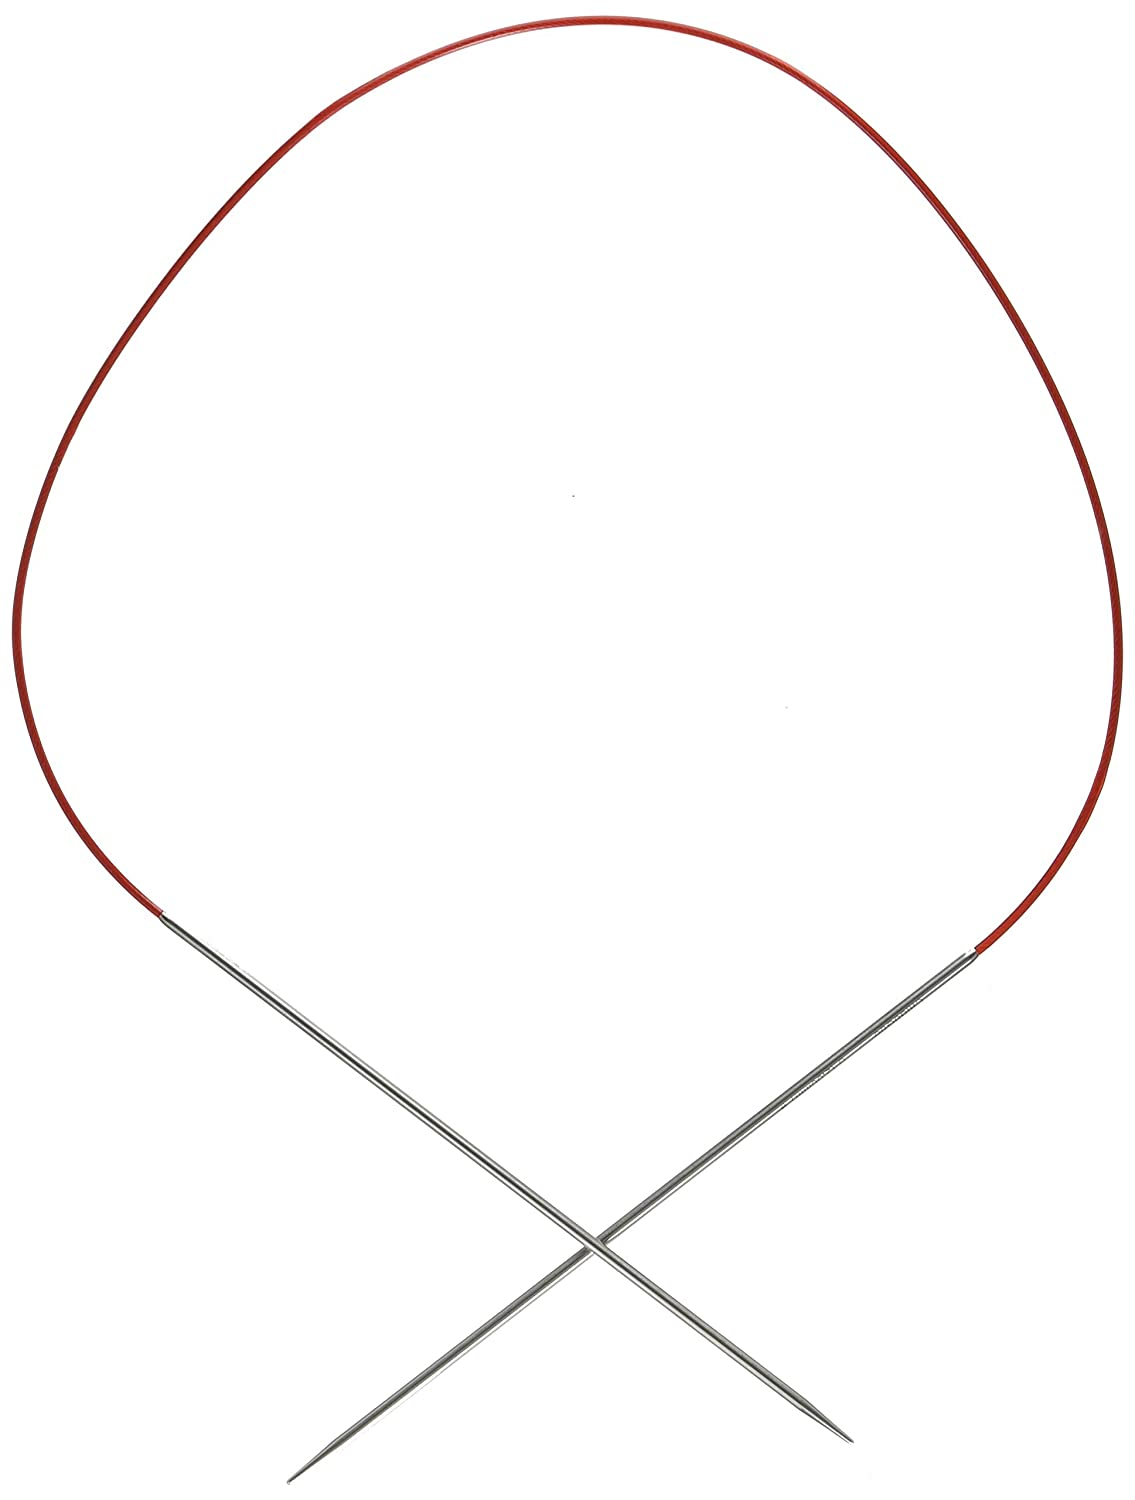 2.75mm Stainless Steel Knitting Needle; Size US 2 ChiaoGoo Red Lace Circular 24-inch 7024-2 61cm